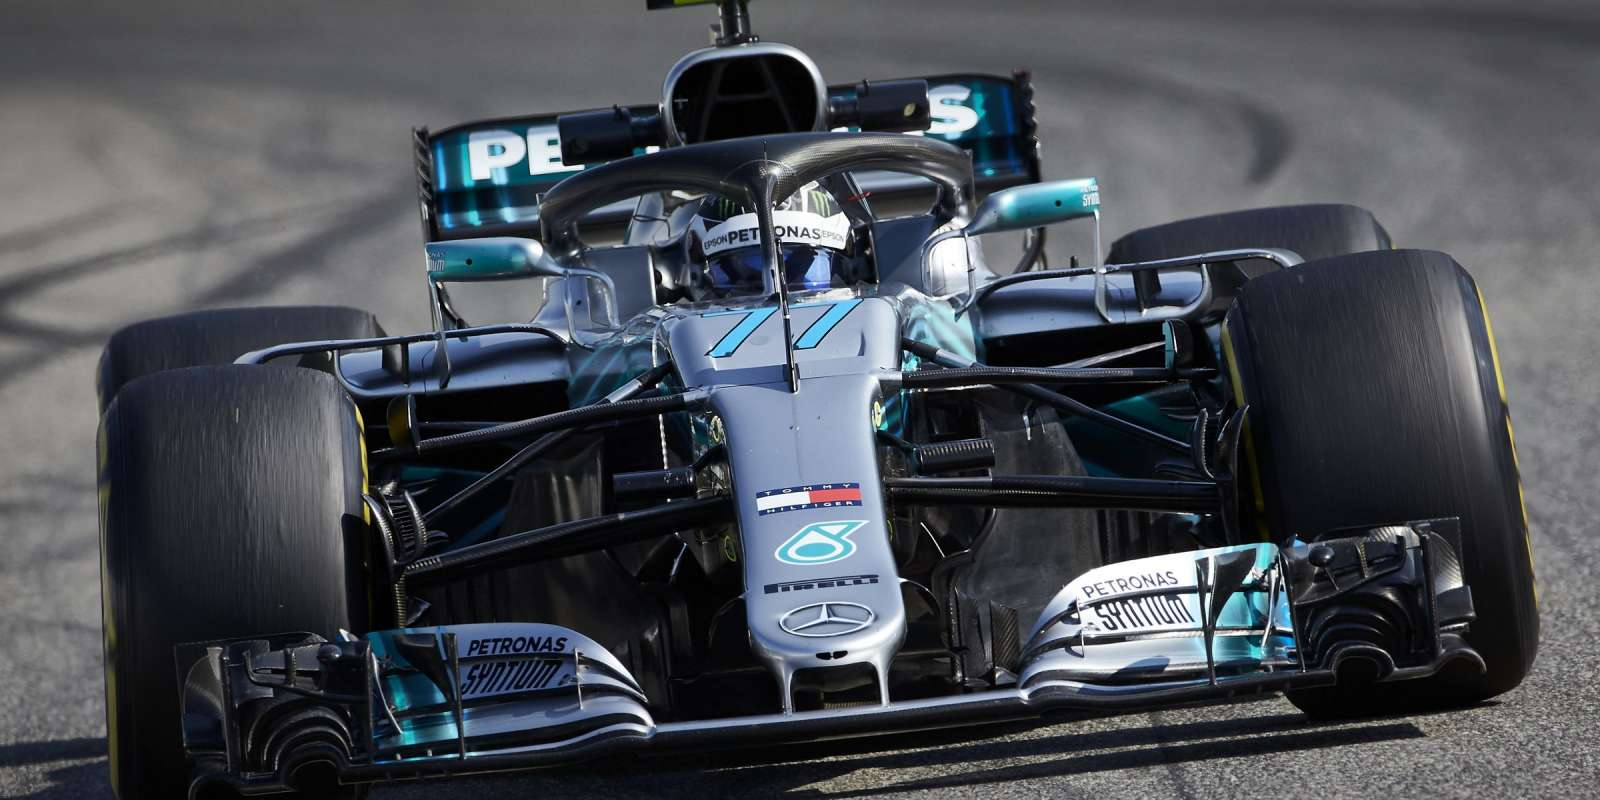 Images from practice and qualifying of the the 2018 F1 German Grand Prix